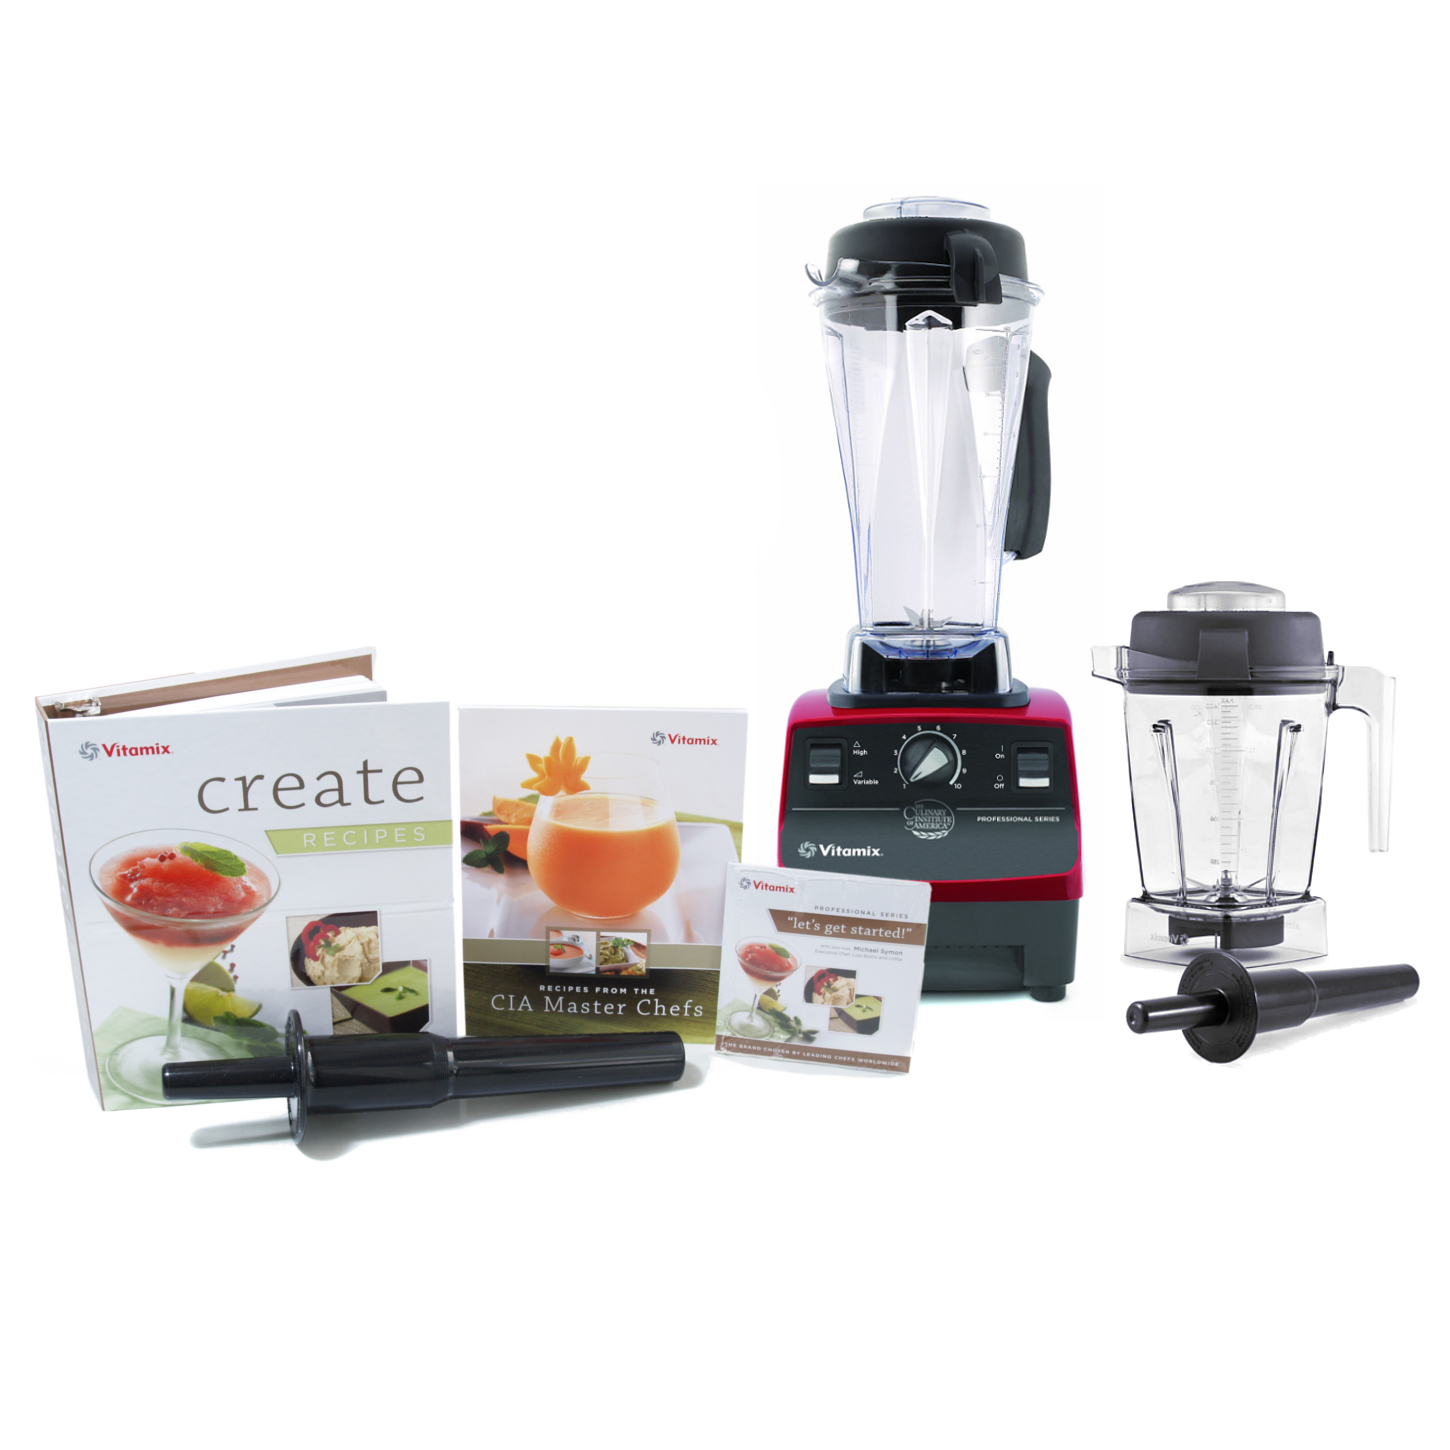 Vitamix CIA Professional Series Ruby Blender With 64 Ounce Wet Container and 48 Ounce Wet Container